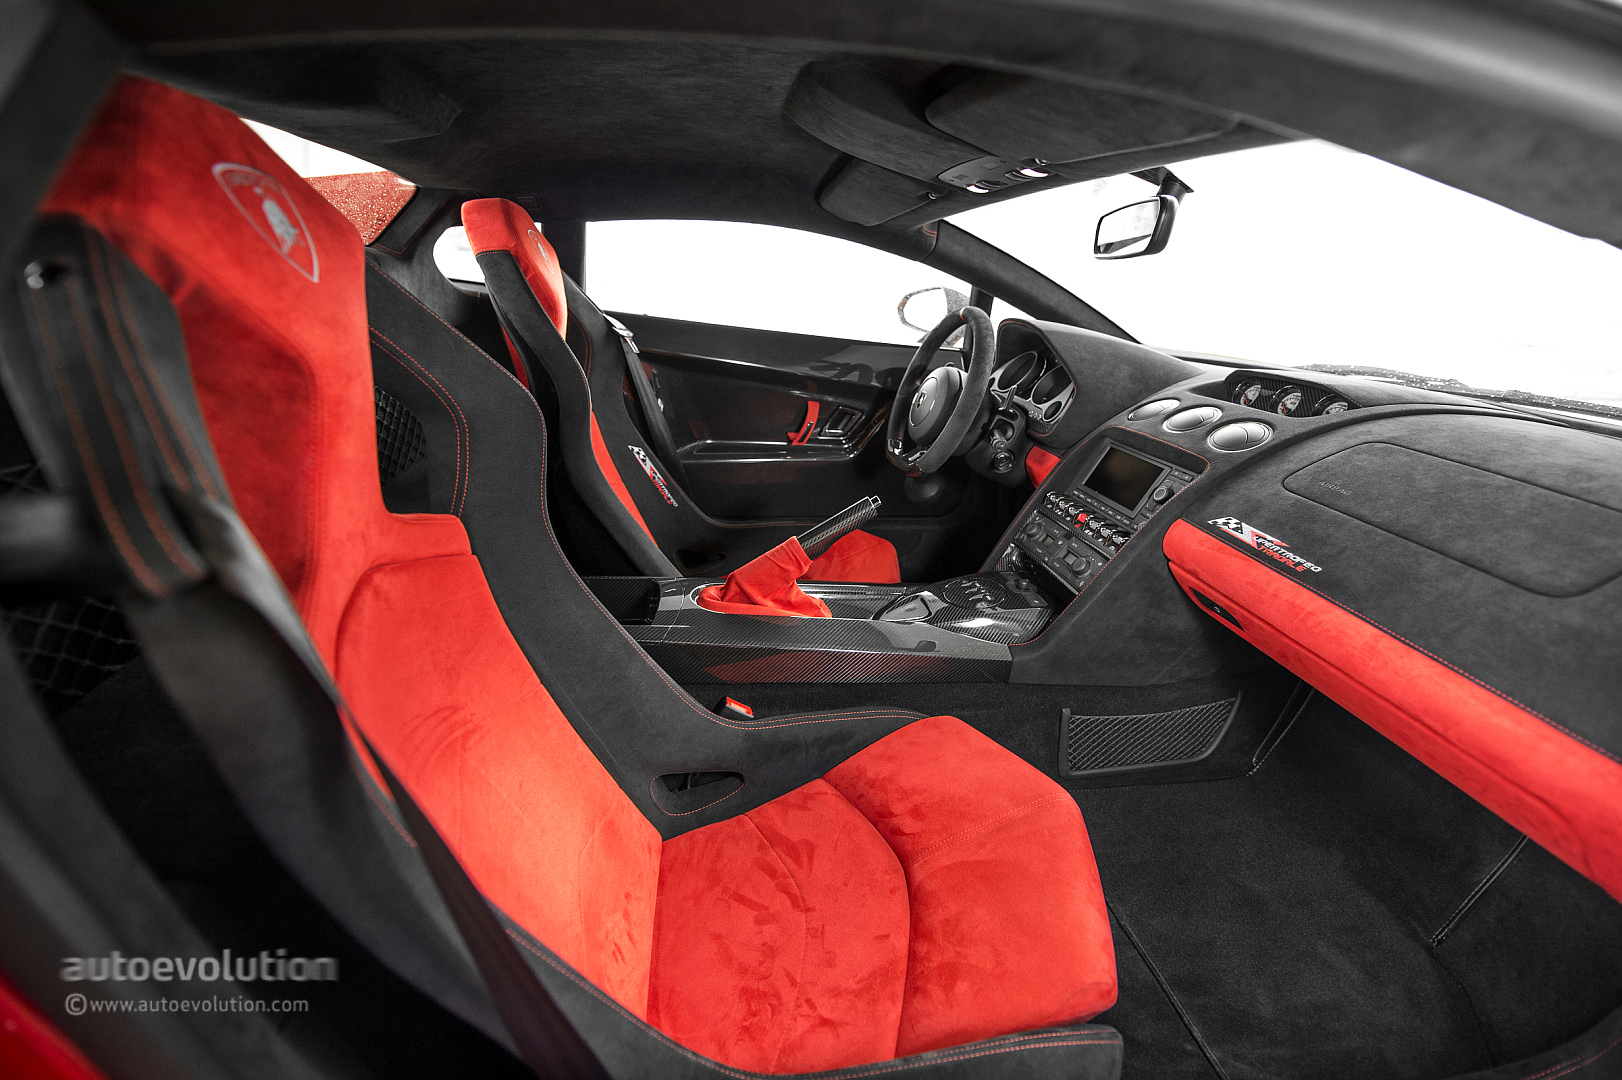 Lamborghini Aventador Interior Seat Belts Pictures To Pin